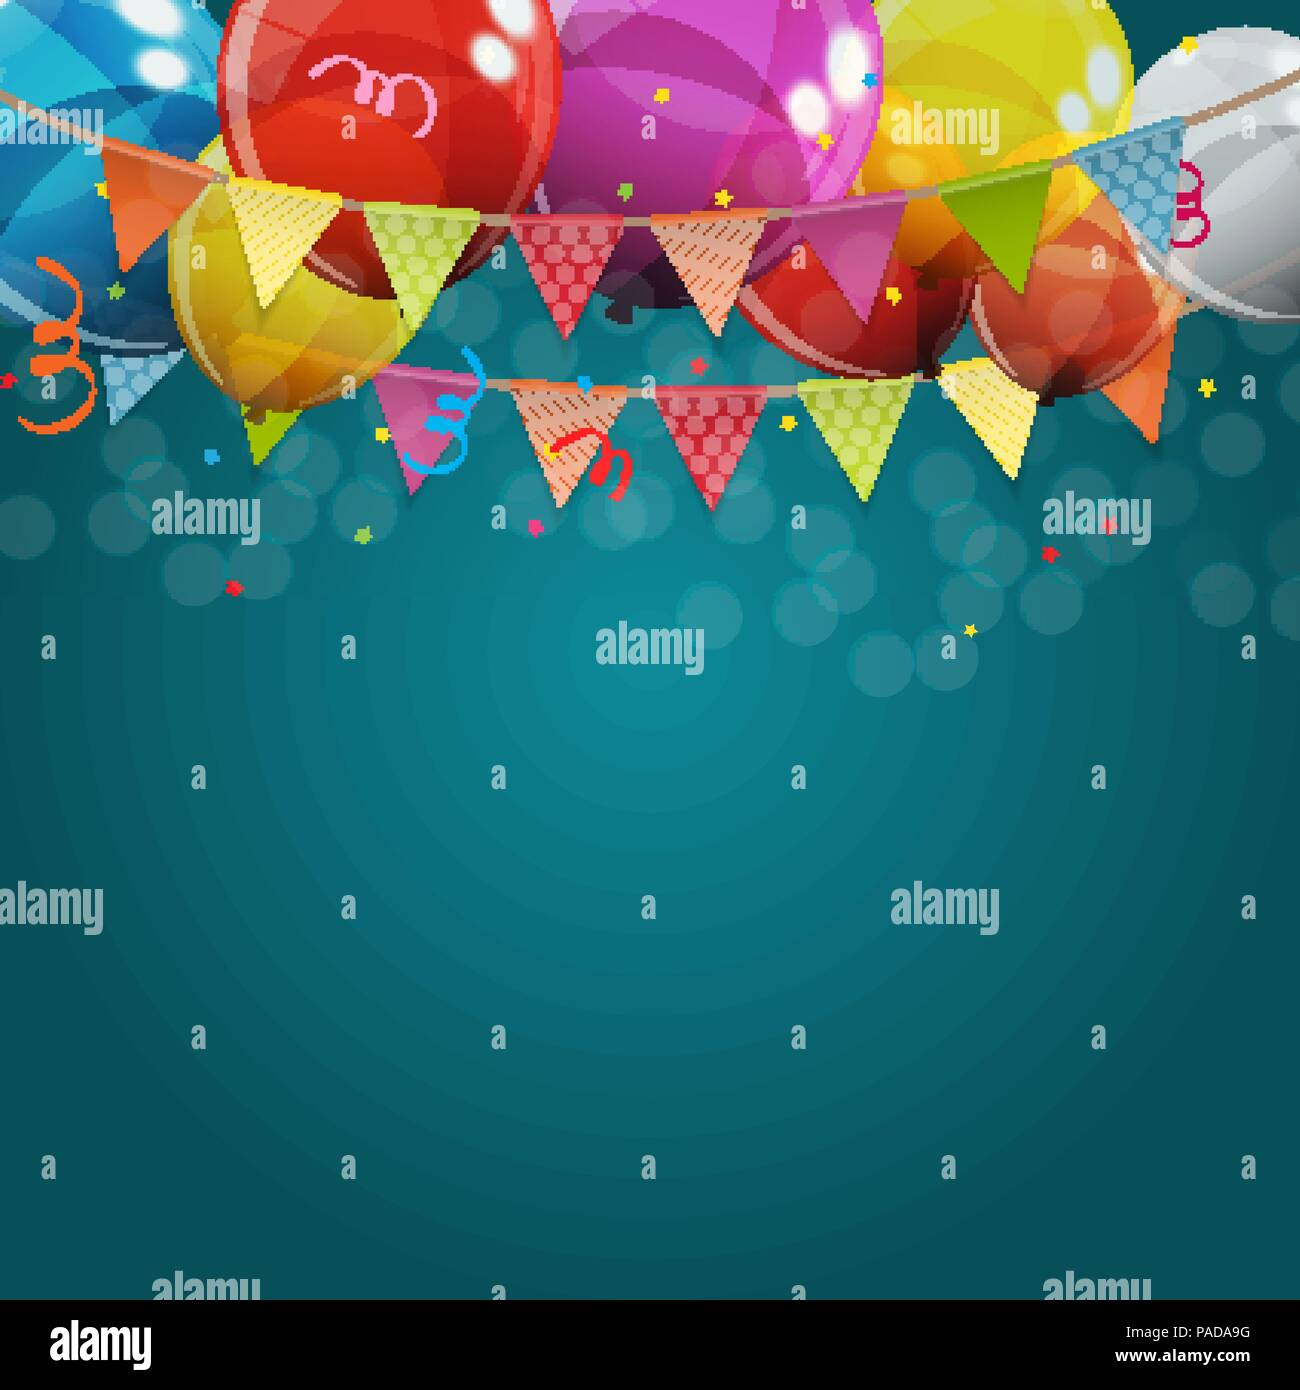 Color Glossy Happy Birthday Balloons Banner Background Vector Illustration - Stock Image